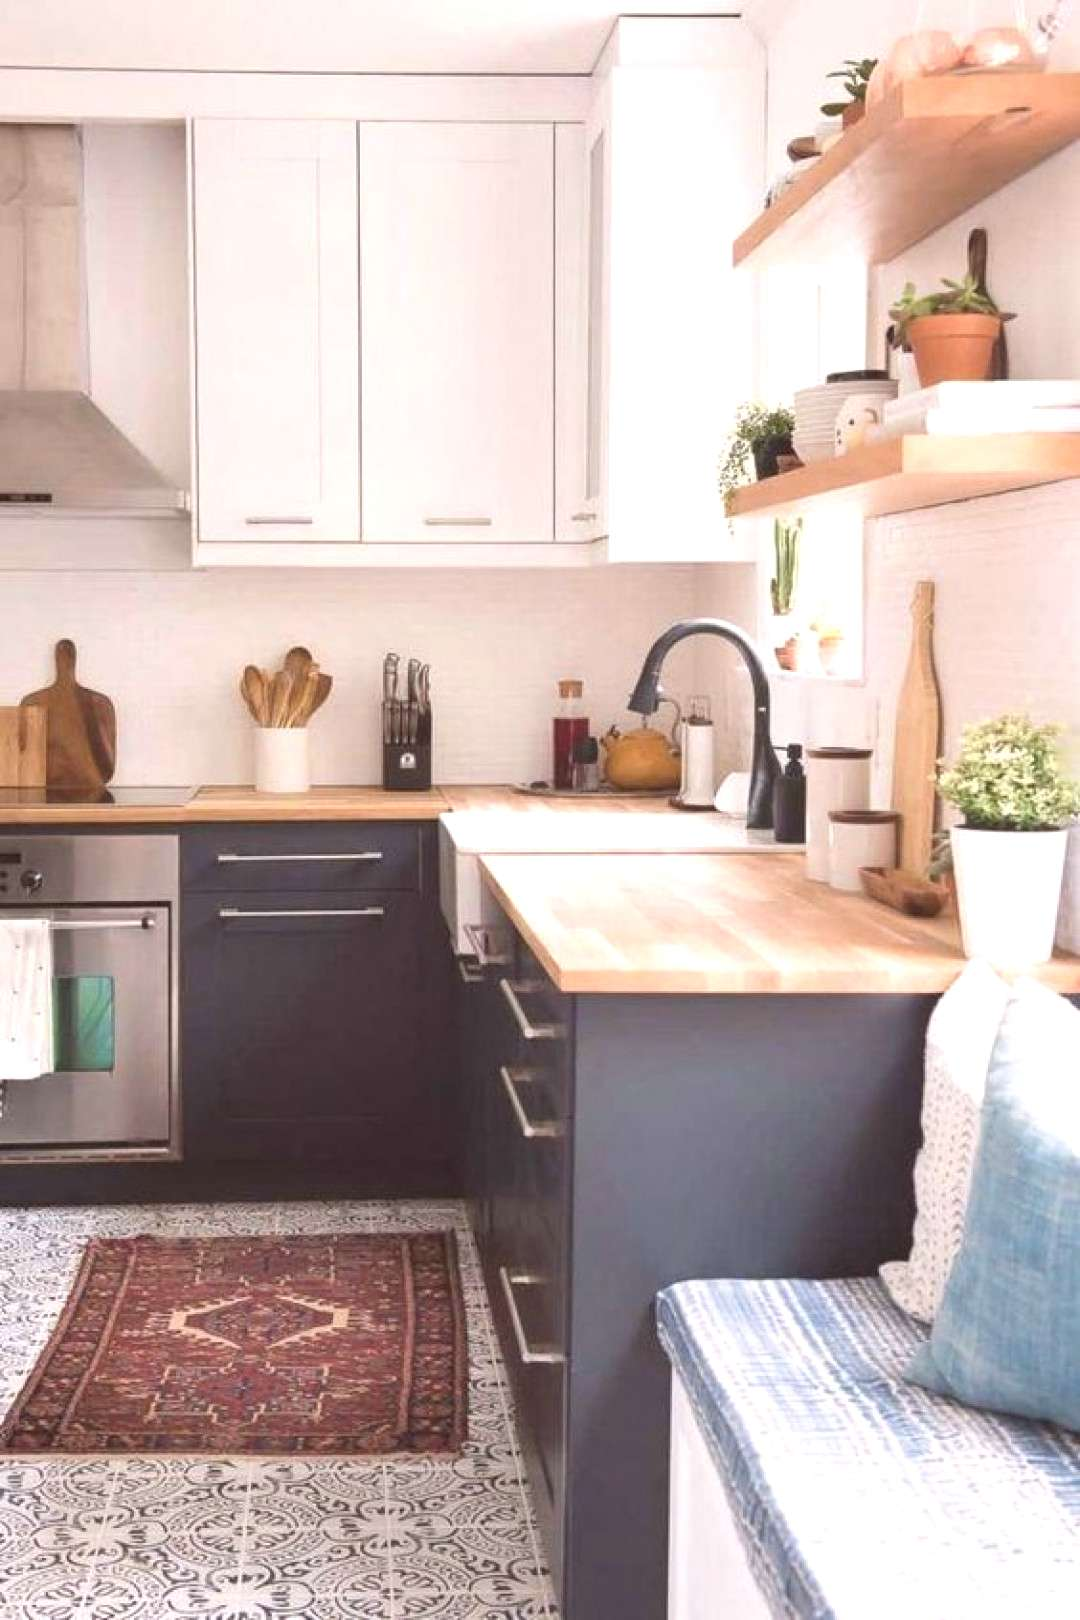 59 Trends Ideas for two-tone kitchen cabinets Trends Ideas for two-tone kitchen cabinets for 2019